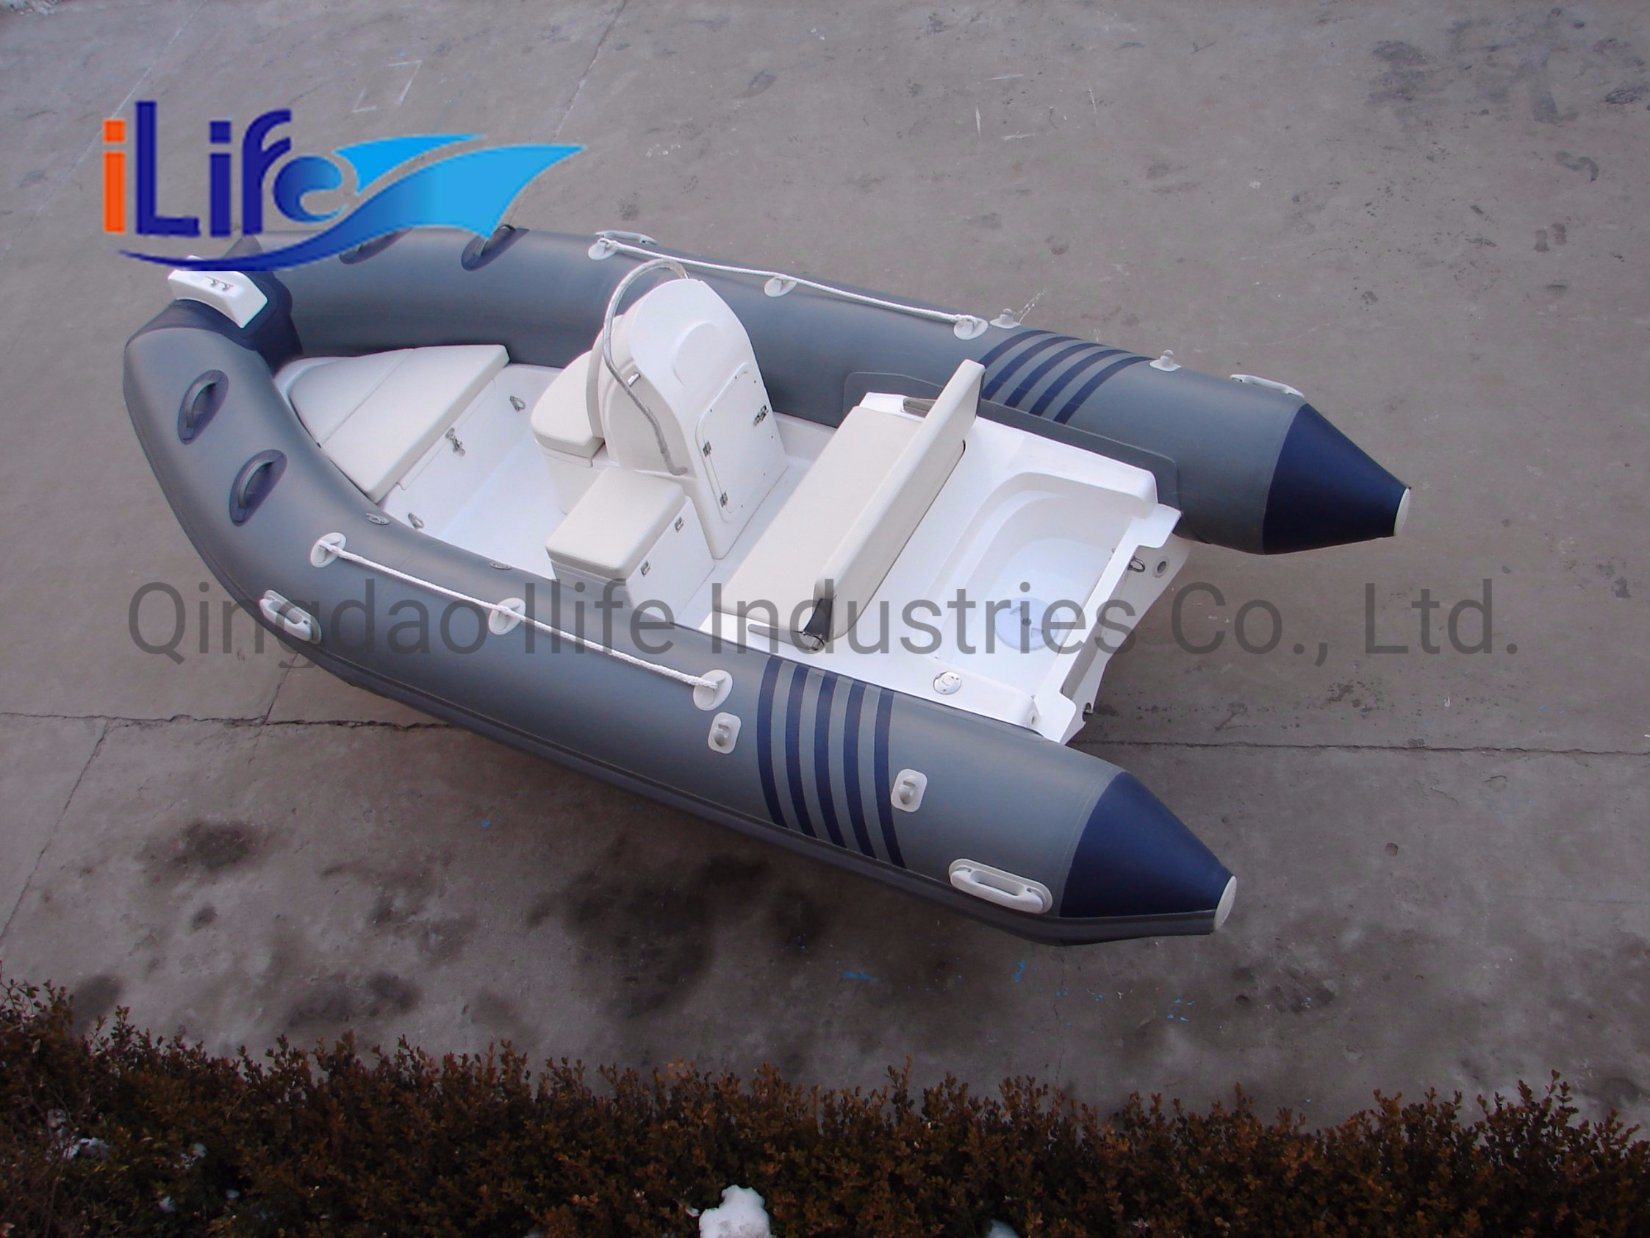 China Ilife 4 3m Ce Center Console And Steering Wheel Fiberglass Rigid Hull Rigid Inflatable Boat China Passenger River Fishing Plastic Boat And Rigid Inflatable Rubber Boat Price